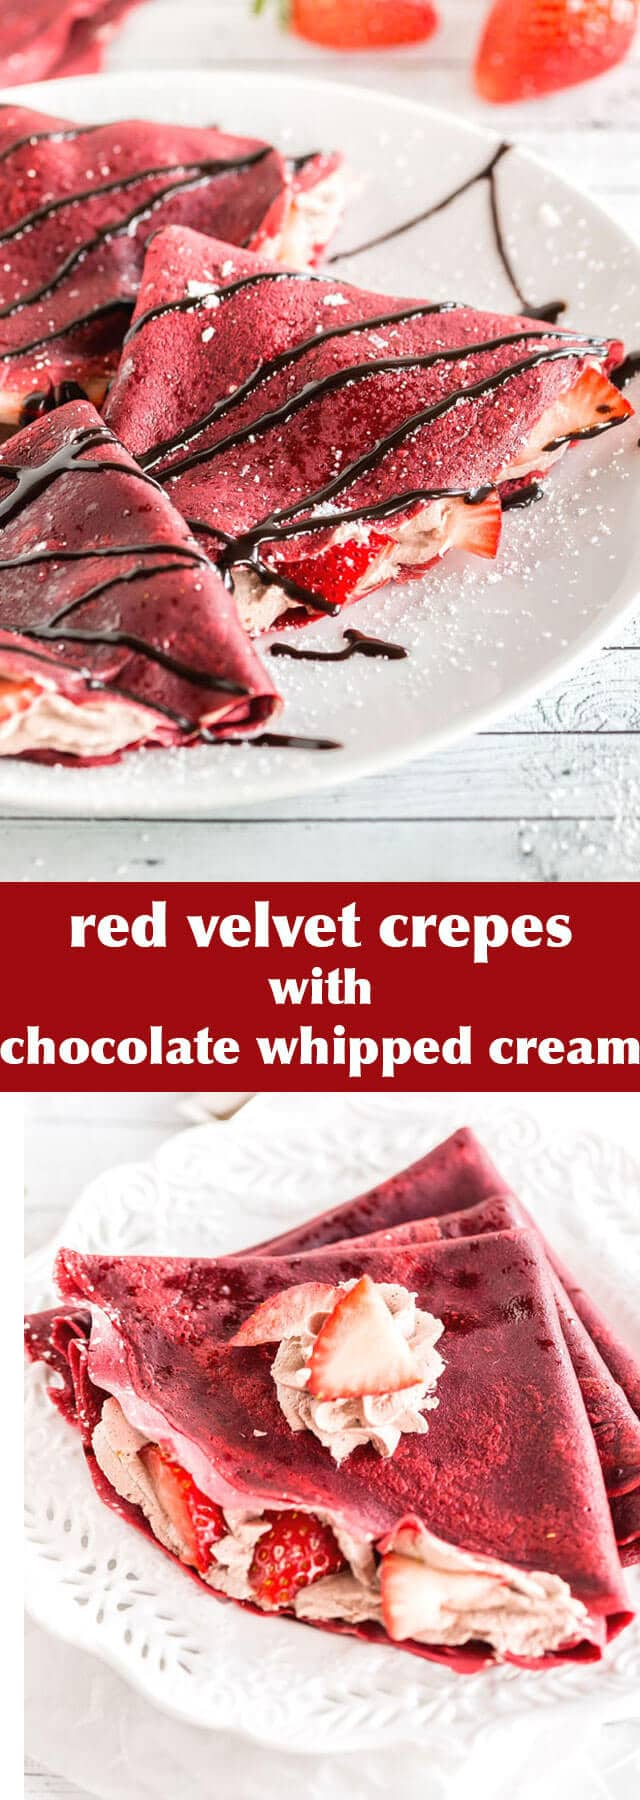 red-velvet-crepes-with-chocolate-whipped-cream